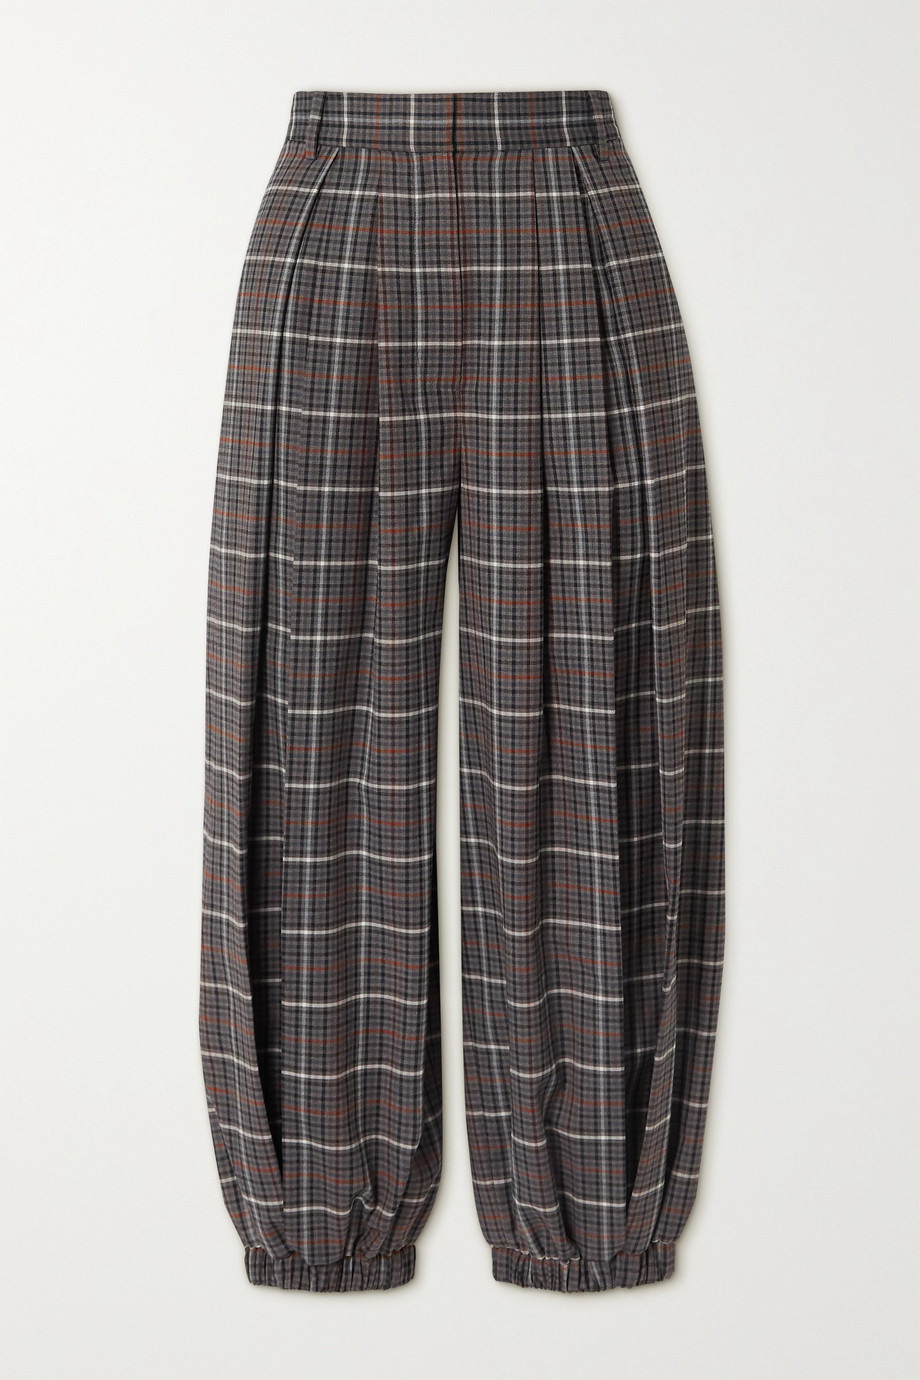 Tibi Gabe cropped pleated checked woven tapered pants